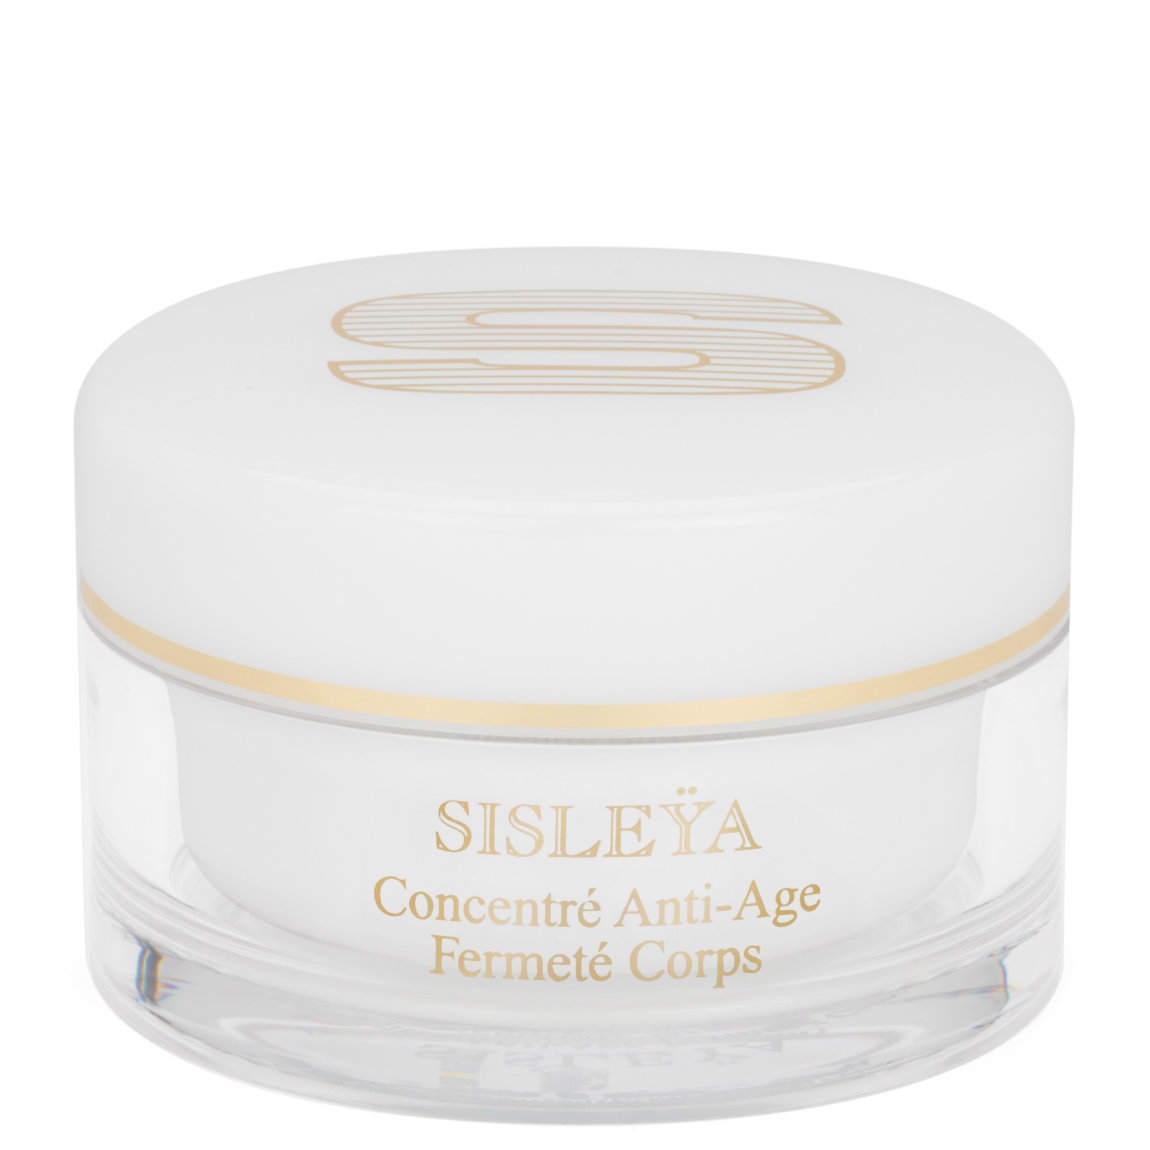 Sisley-Paris Sisleÿa Anti-Aging Concentrate Firming Body Care product smear.